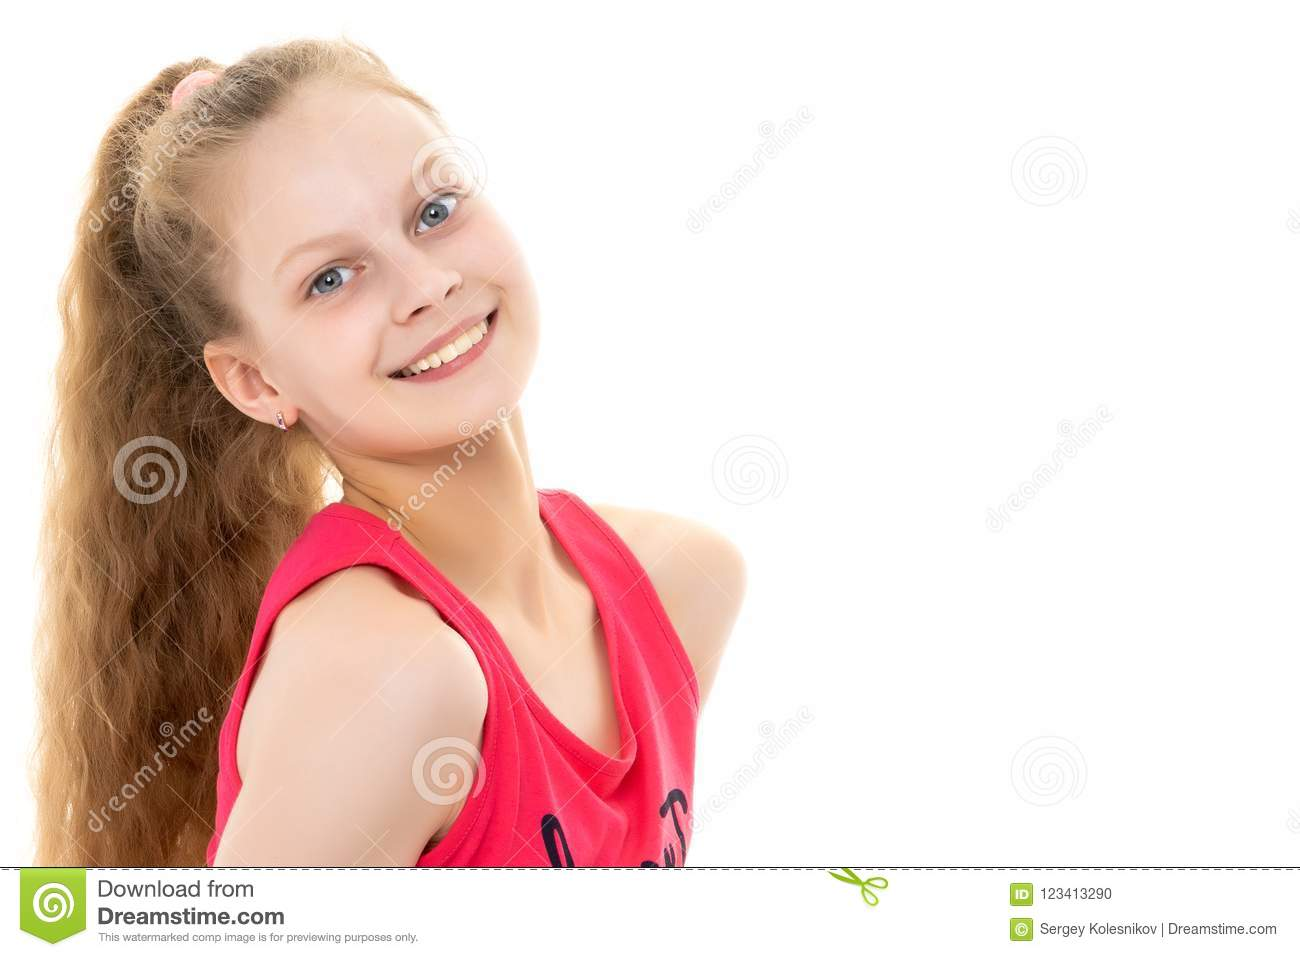 693960e6b7c6 A Little Girl In A Bathing Suit Lies. Stock Photo - Image of person ...